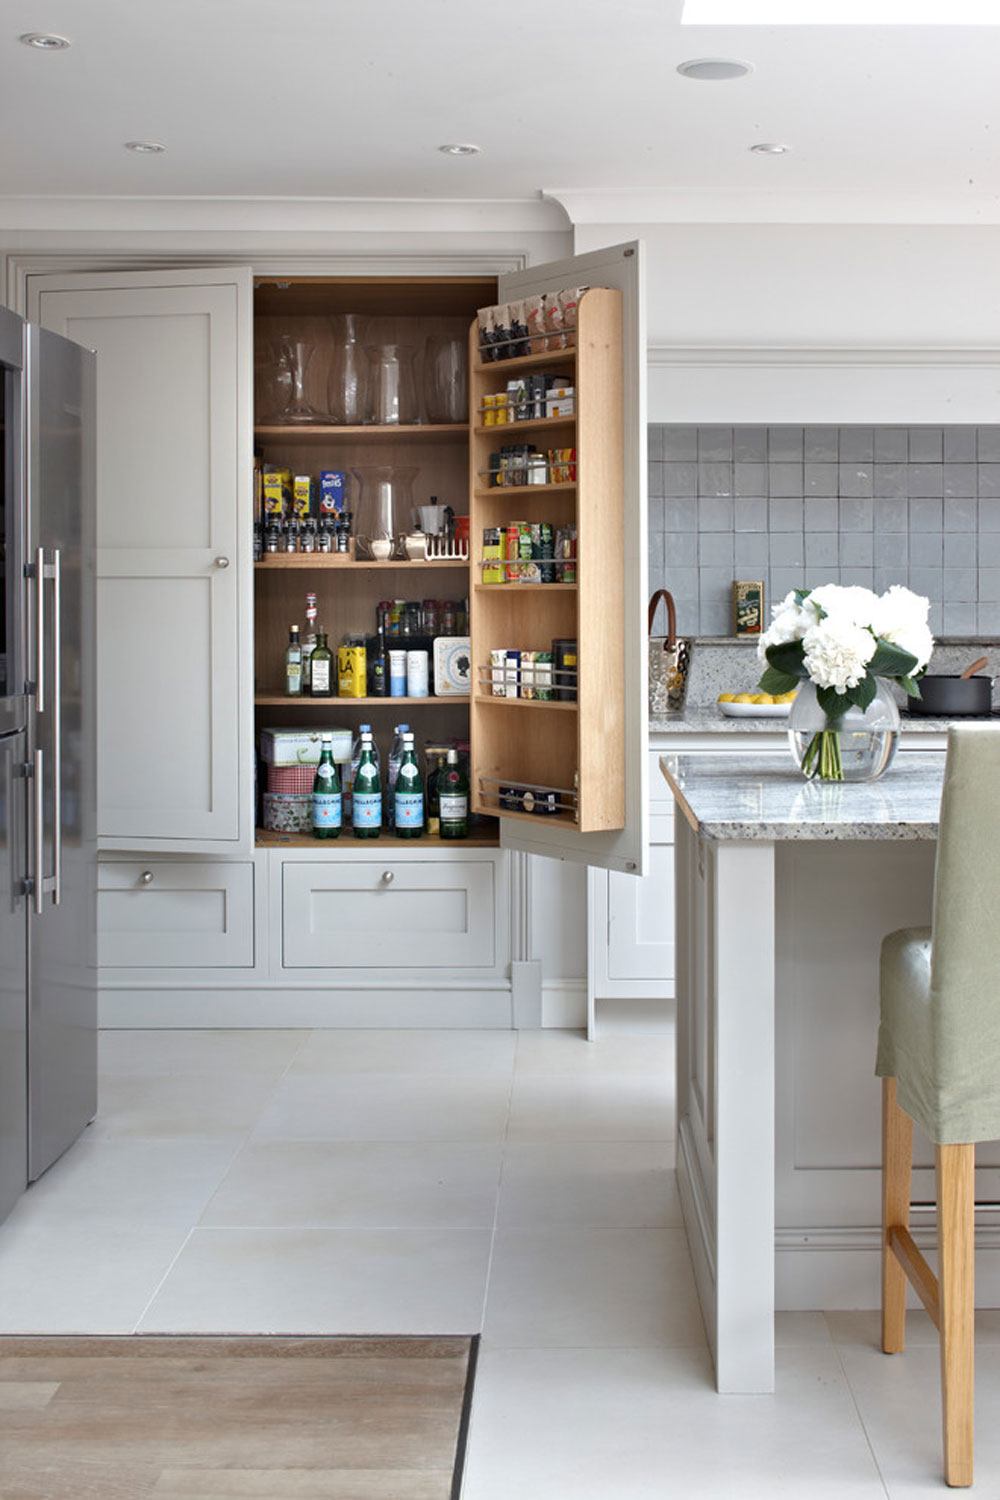 Surrey-bespoke-traditional-shaker-kitchen-by-brayer-design Pantry Cabinet Ideas: Shelving and Storage Ideas for Your Kitchen